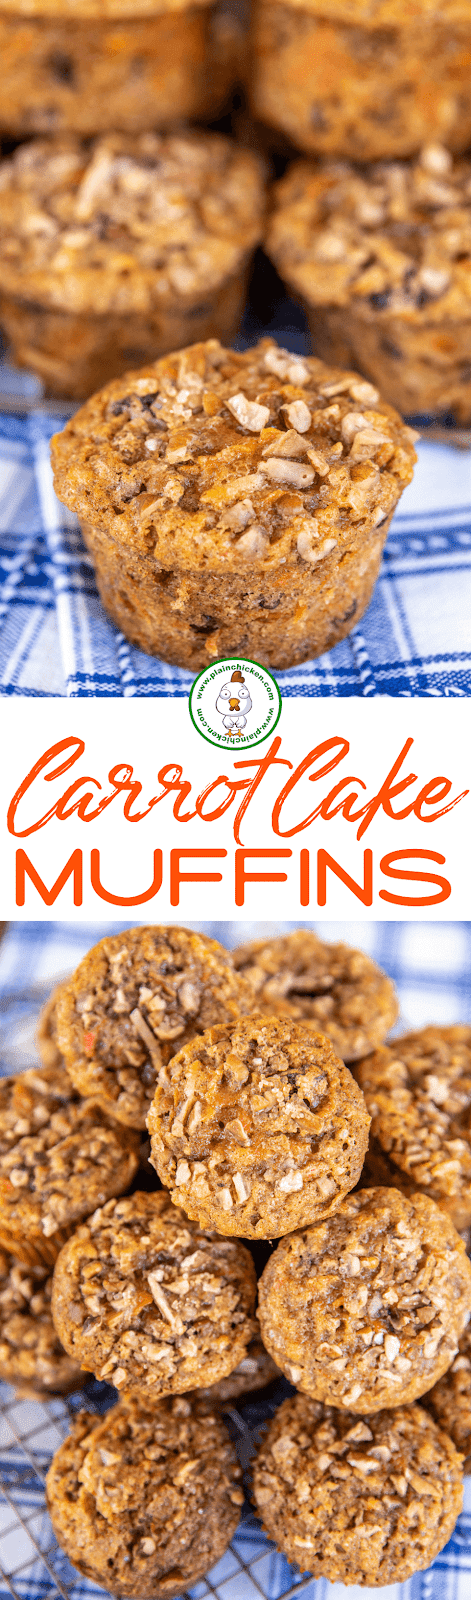 collage of 2 photos of carrot cake muffins